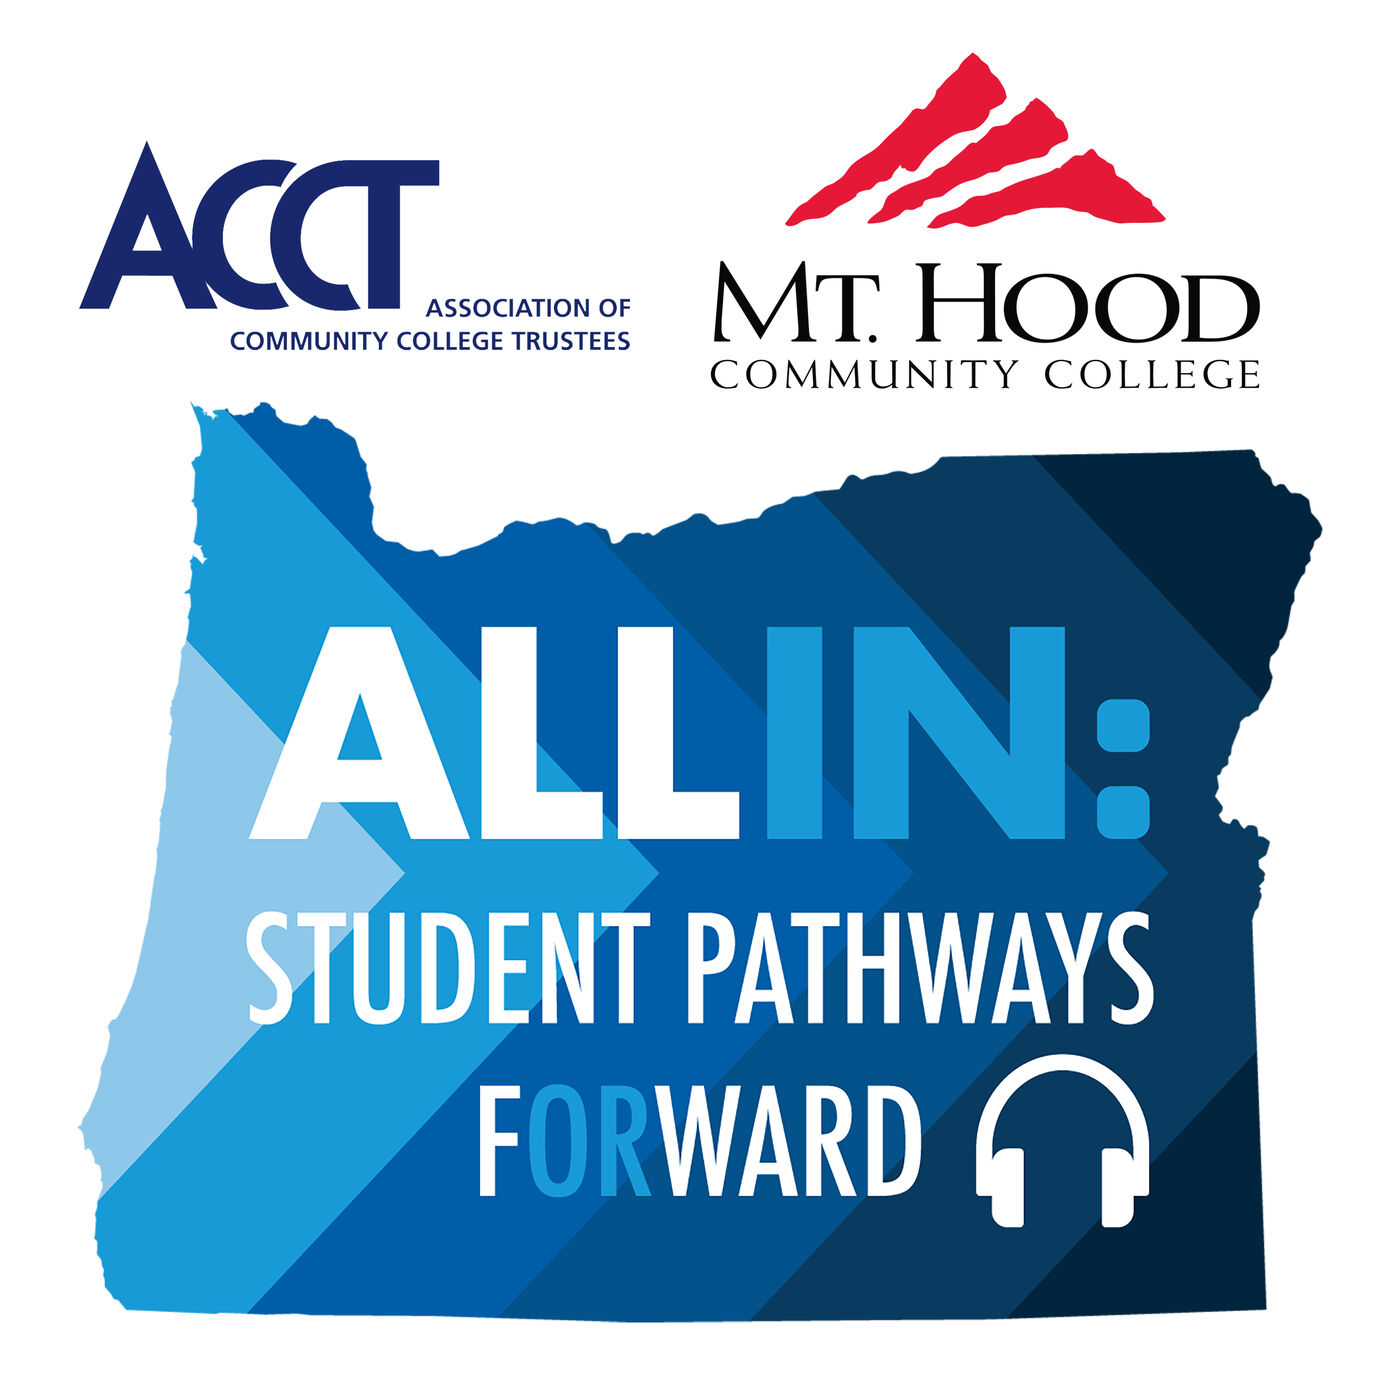 Mt. Hood Community College & ACCT - Student Bakr Alkarawi & President Dr. Lisa Skari; Association of Community College Trustees Director of Government Relations, Katie Brown